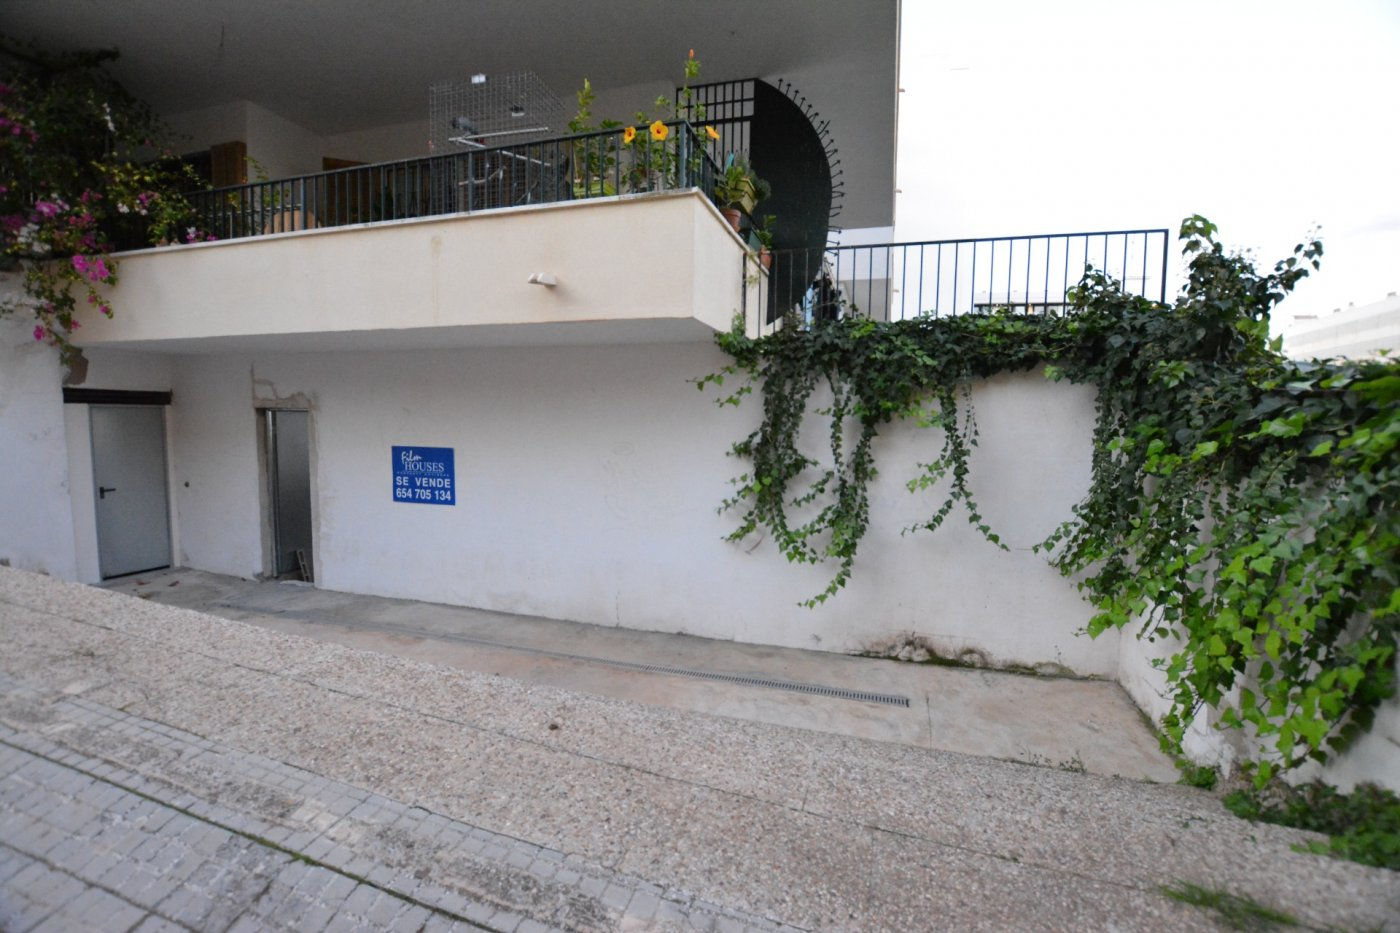 Parking voiture  Palma de mallorca ,el terreno. Local/garaje de 3 plantas en el terreno. palma de mallorca